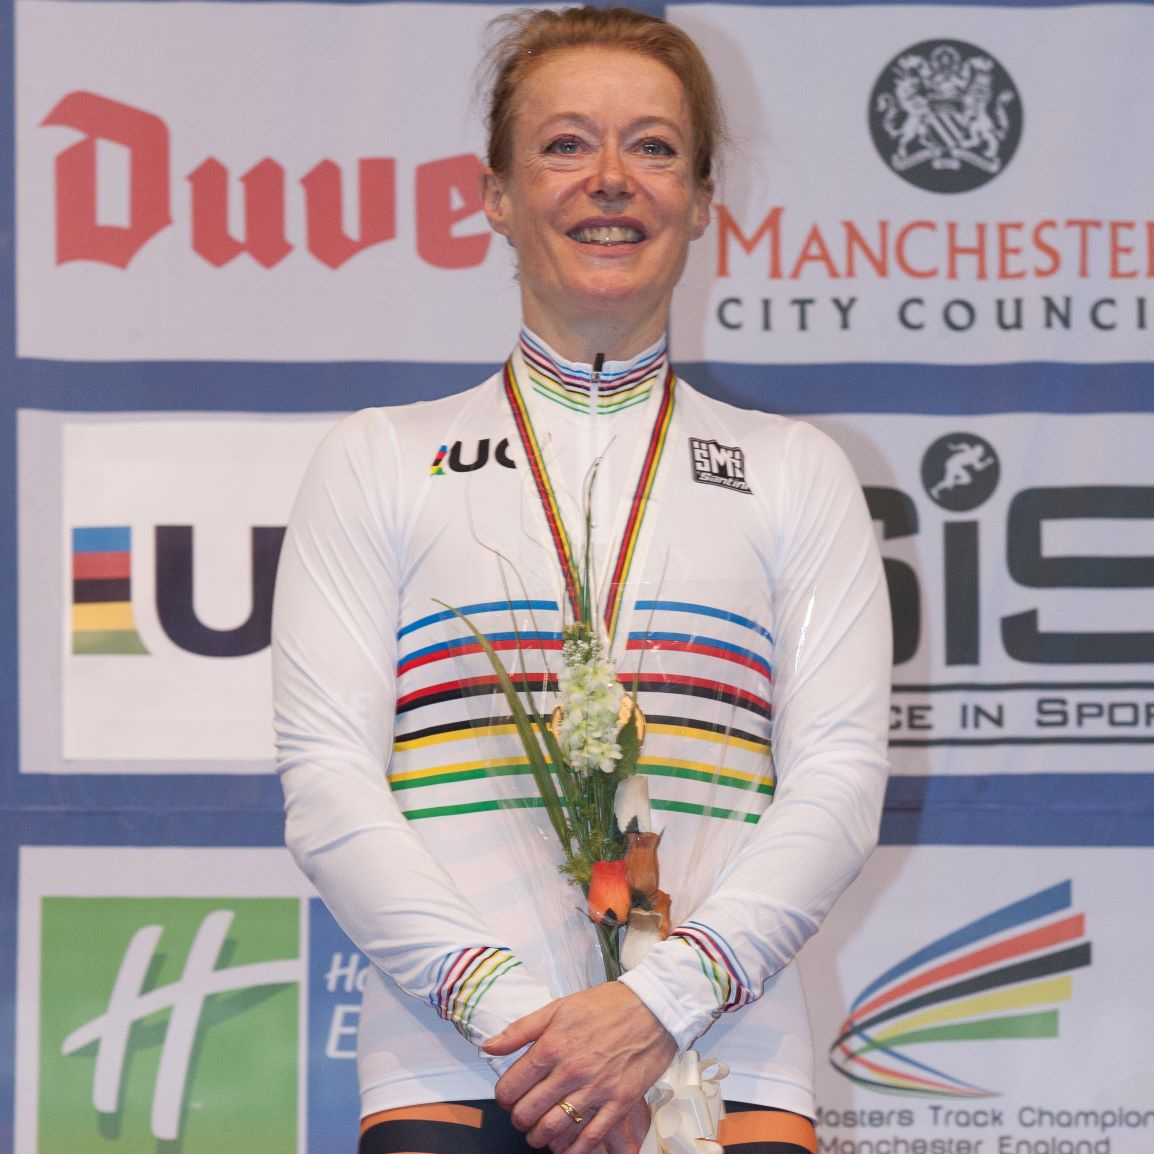 Jan cycling ithlete and the athlete-coach relationship